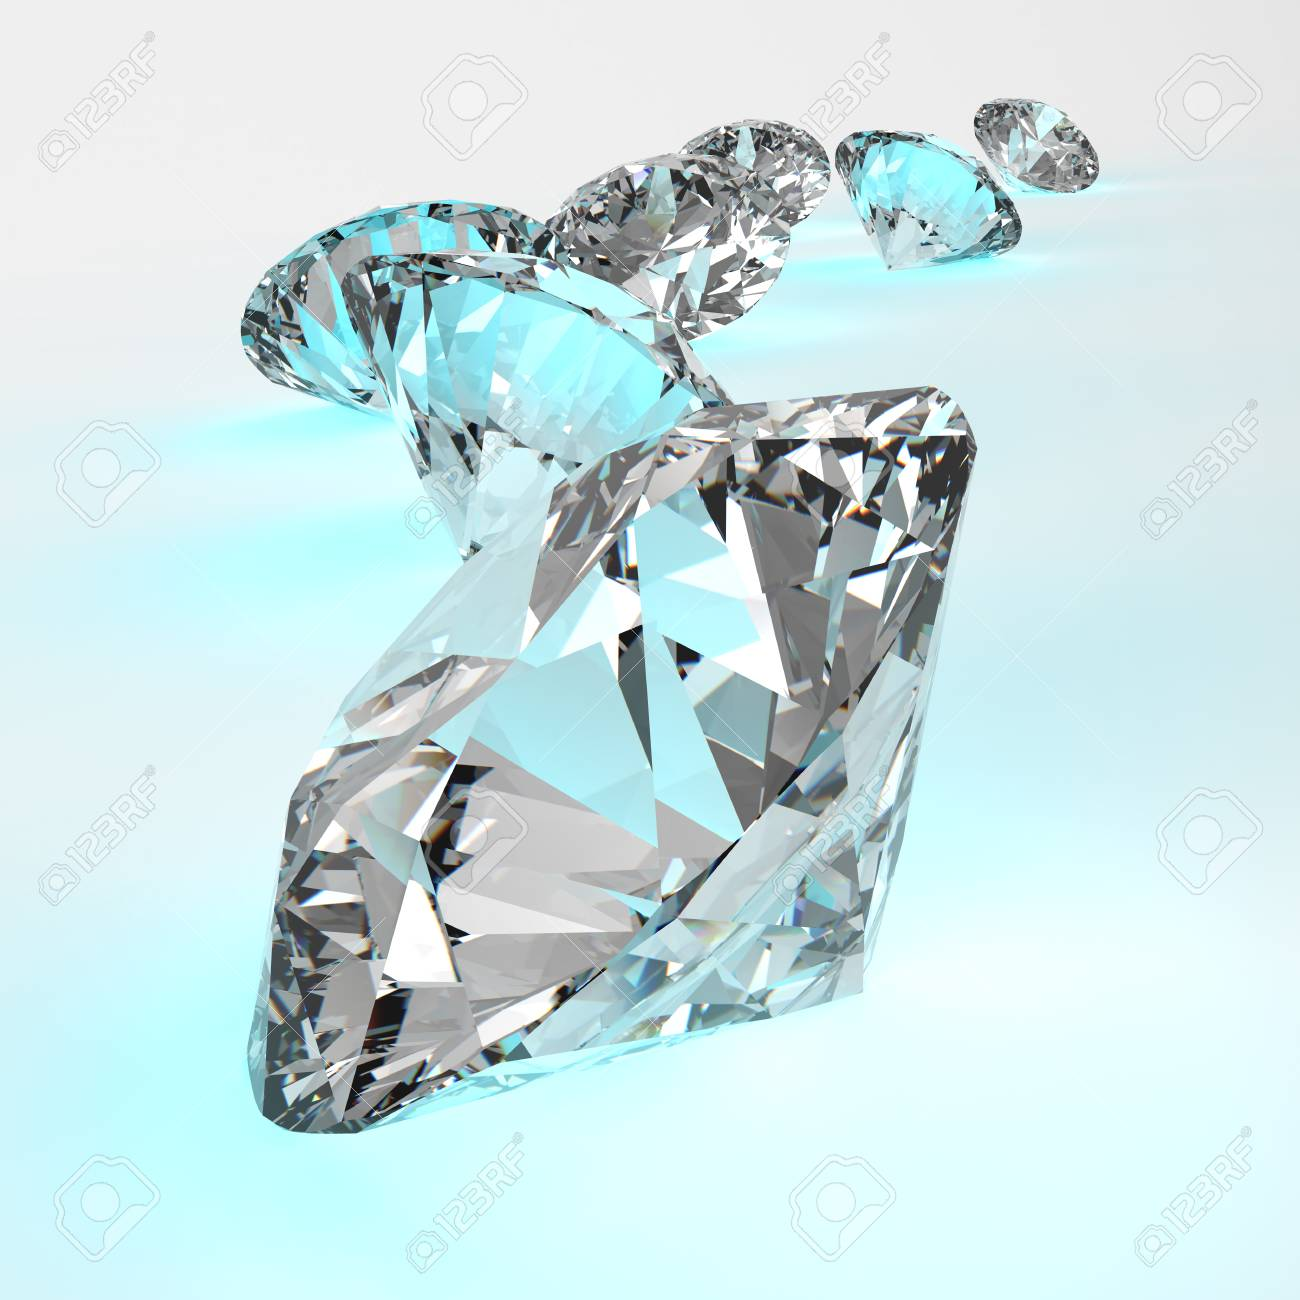 Diamonds isolated on white 3d model composition concept Stock Photo - 25265594